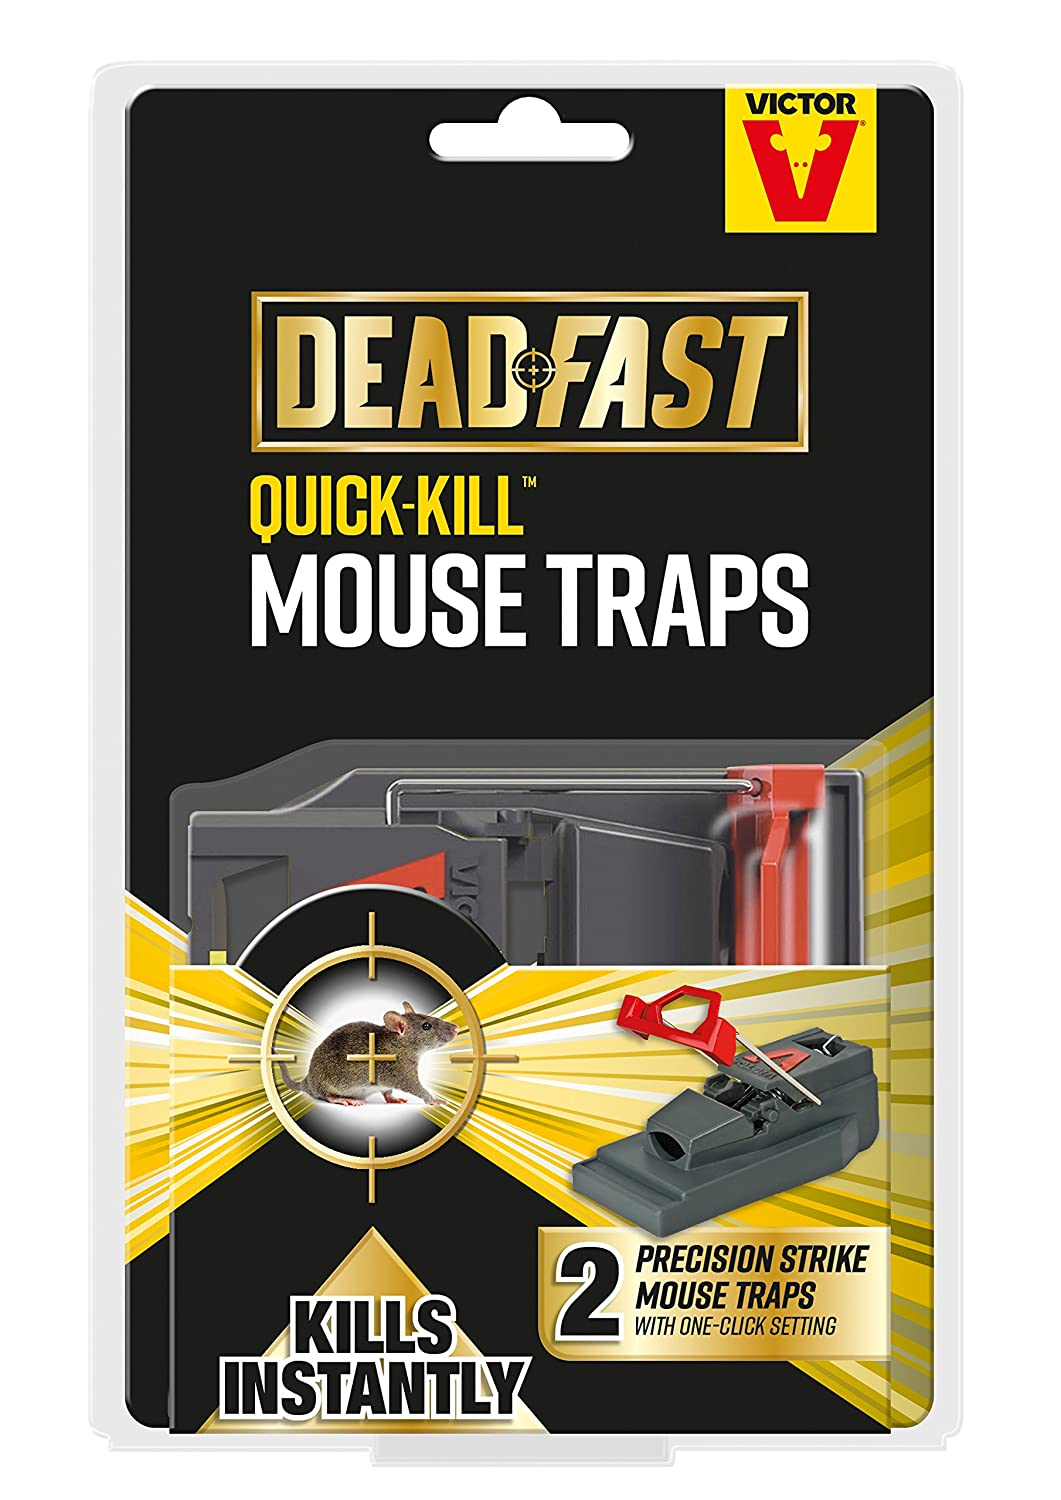 Deadfast Quick Kill Mouse Trap, Twin Pack Woodstream 20300399